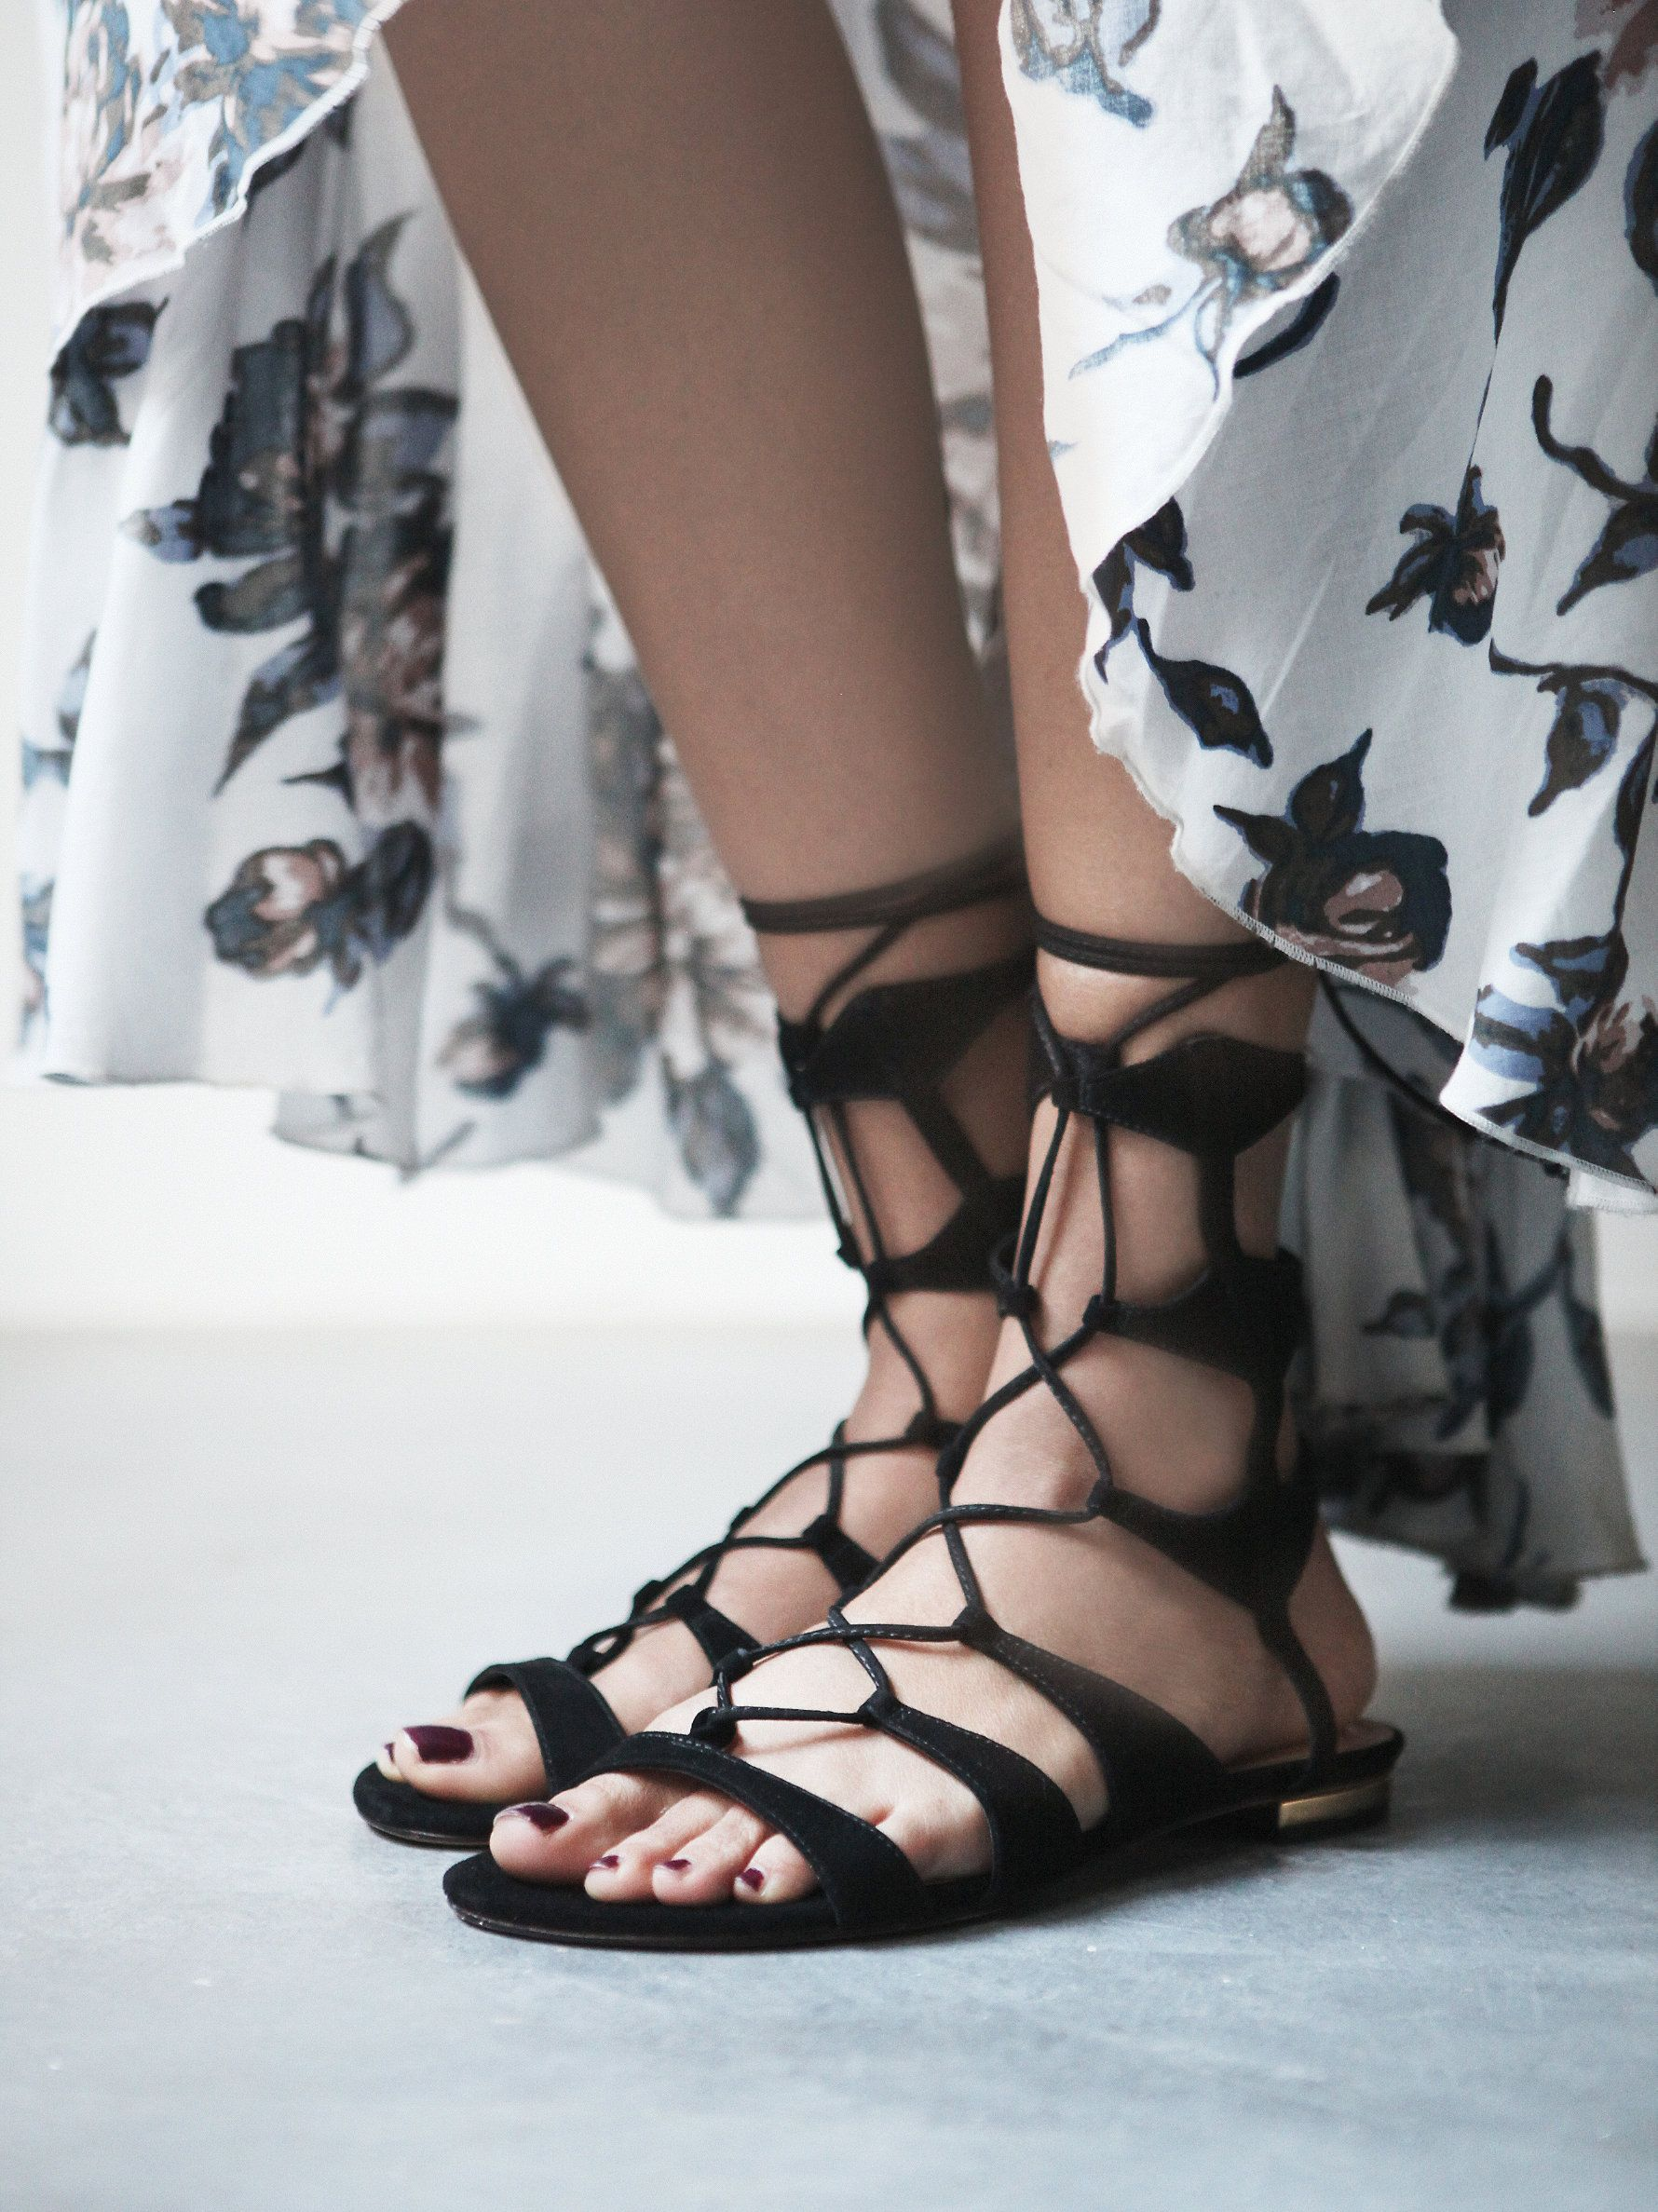 eb9bb98379a9 268 Lina Lace Up Gladiator Sandals